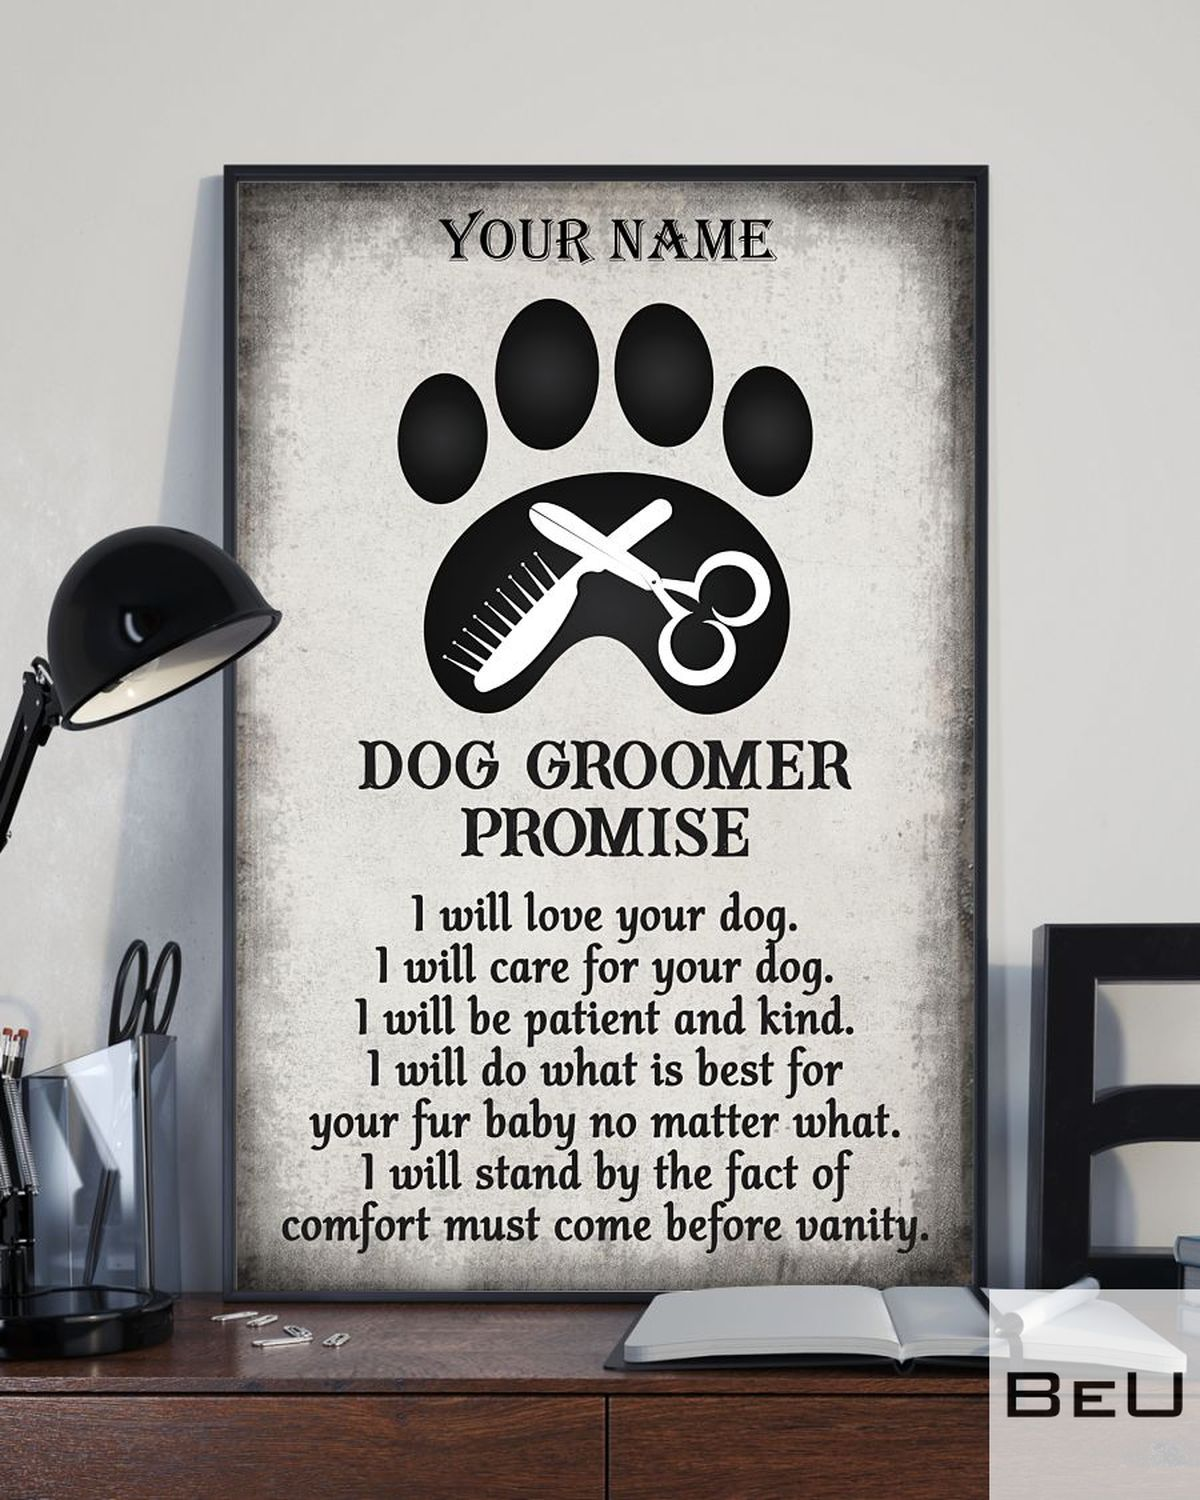 Personalized Dog Groomer Promise I Will Love Your Dog Posterx